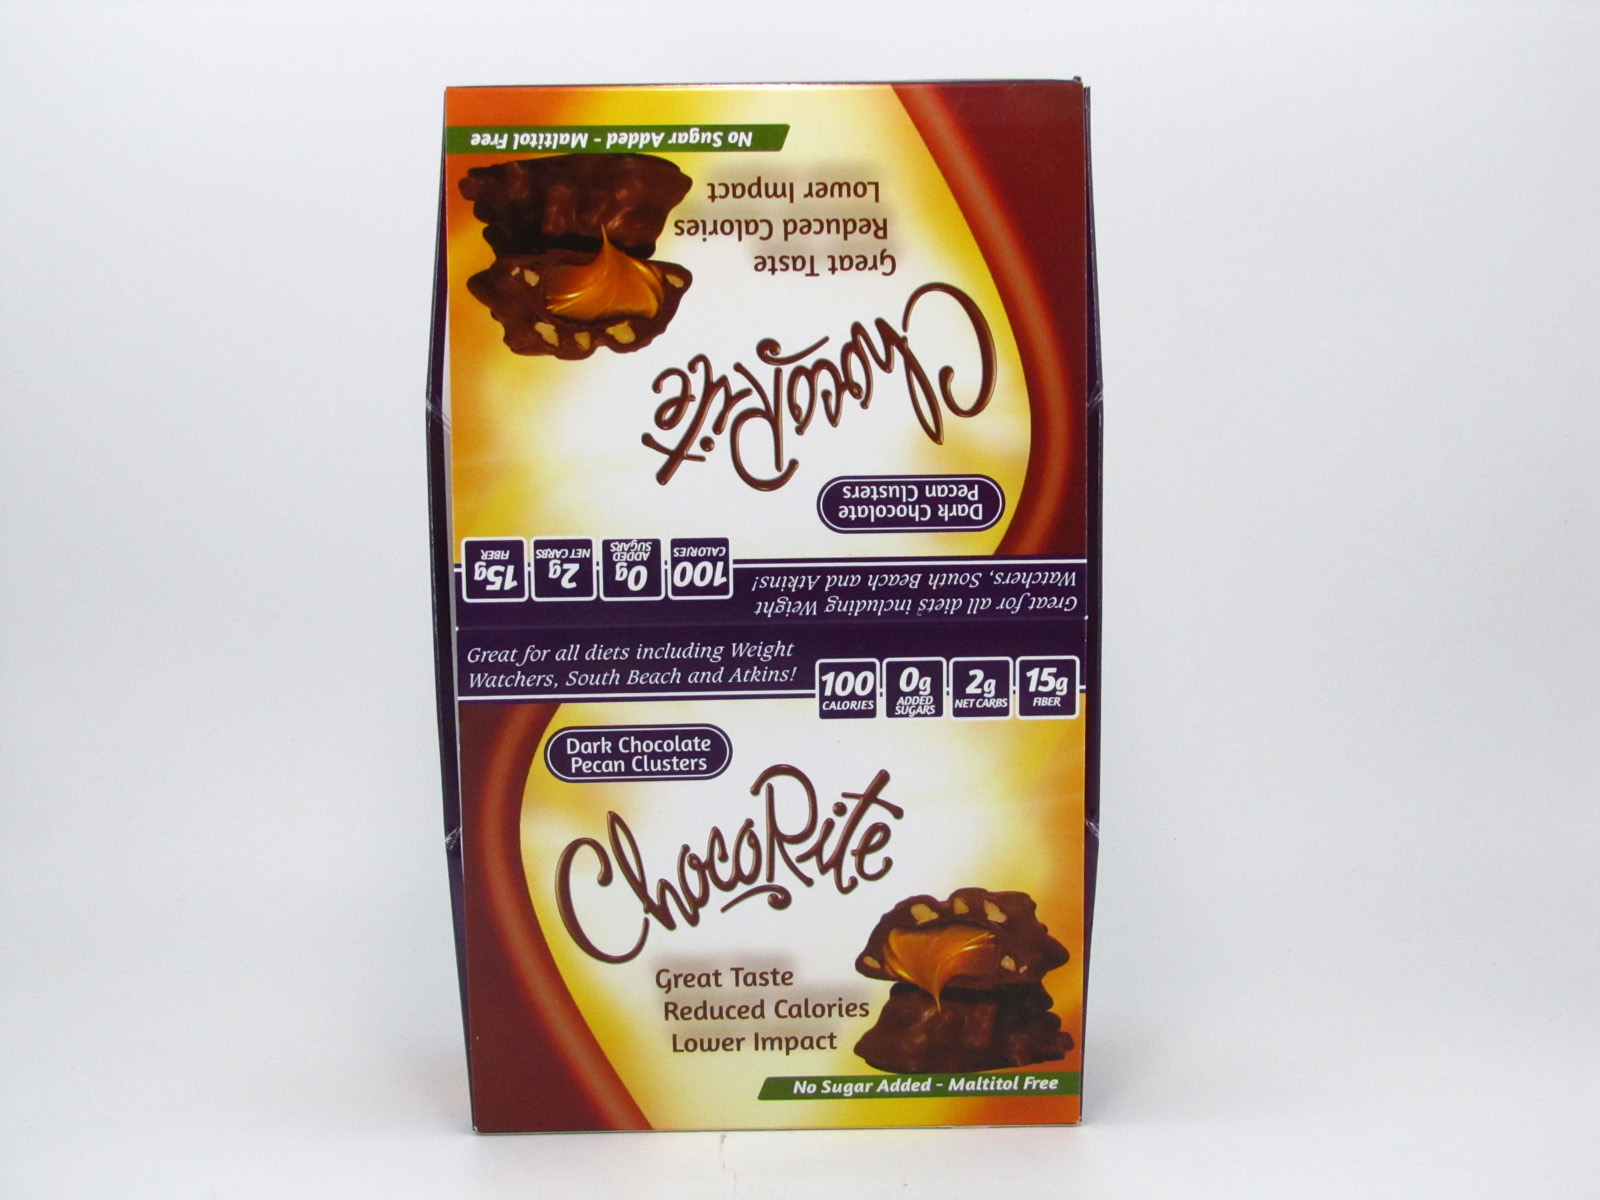 Chocorite Bar (32g) - Dark Chocolate Pecan Cluster Box of 16 - front view